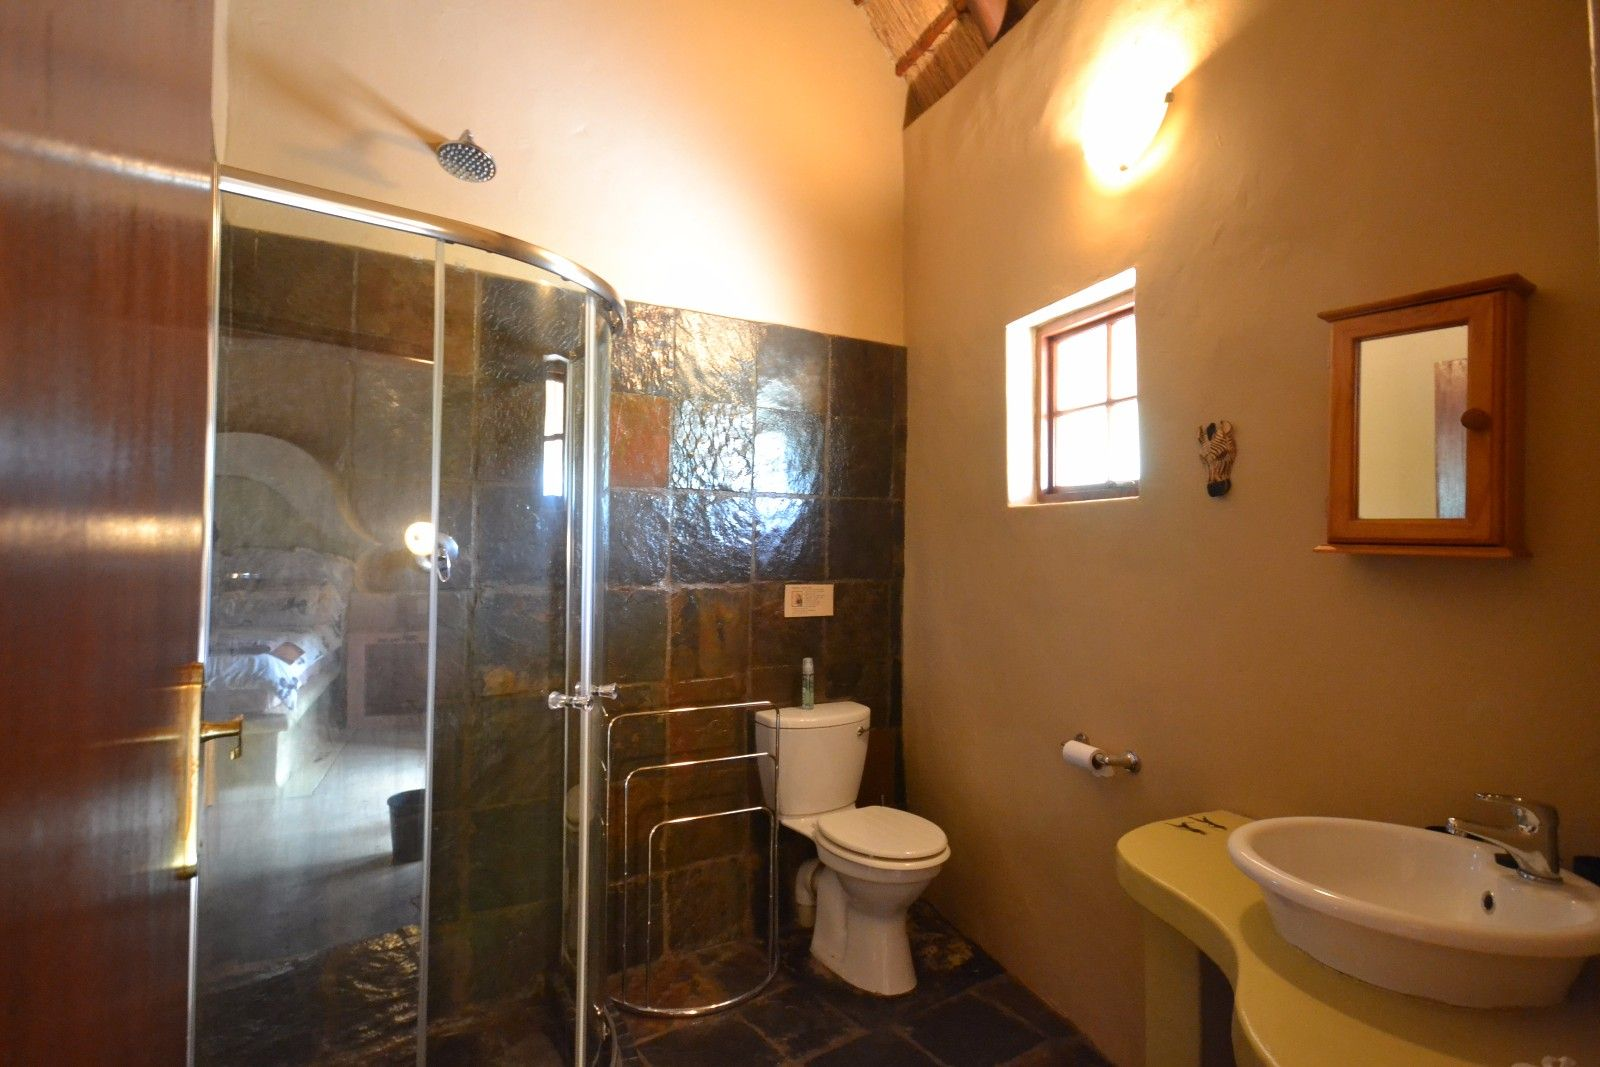 Kampersrus property for sale. Ref No: 13449214. Picture no 11